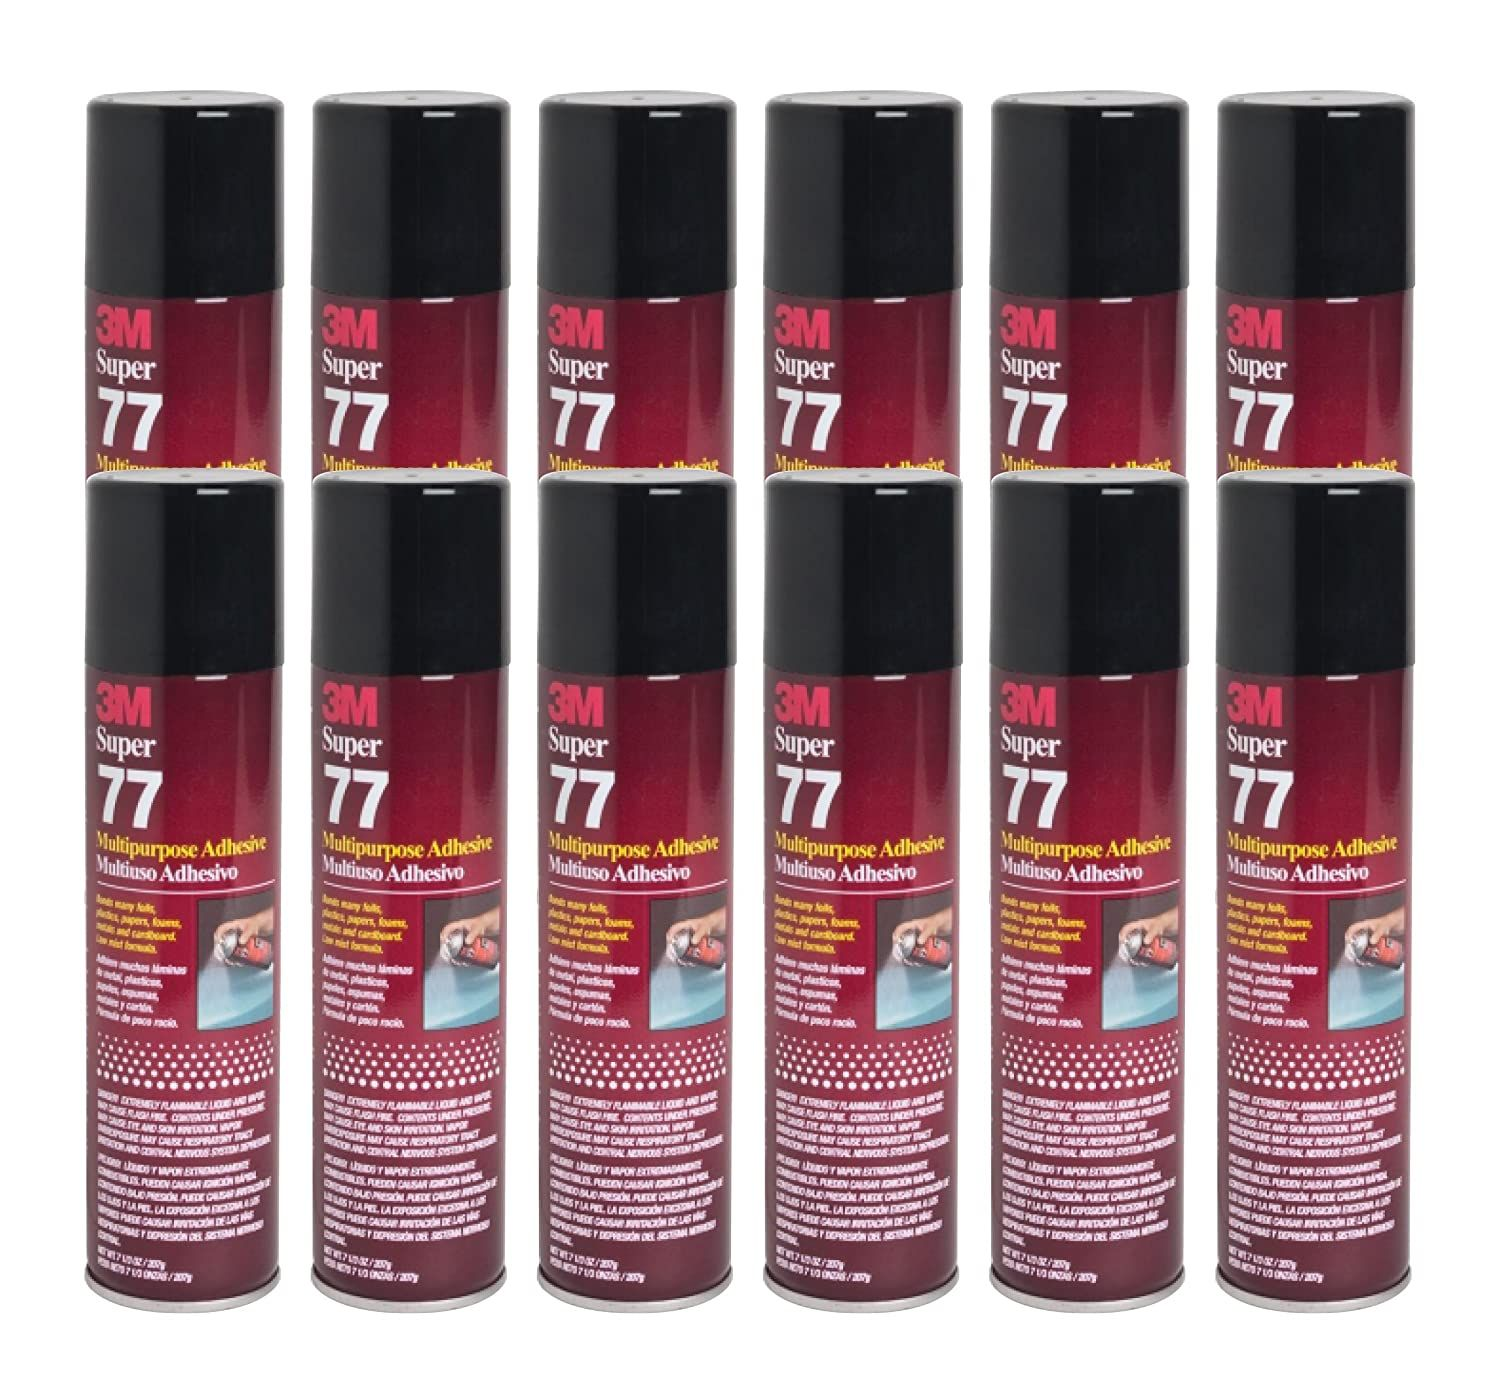 3m Super 77 Spray Glue 7 3 Oz Adhesive For Foil Plastic Paper Foam Metal Pack Of 12 Visit The Image Link More Details Th In 2020 Spray Glue Adhesive Glue Crafts